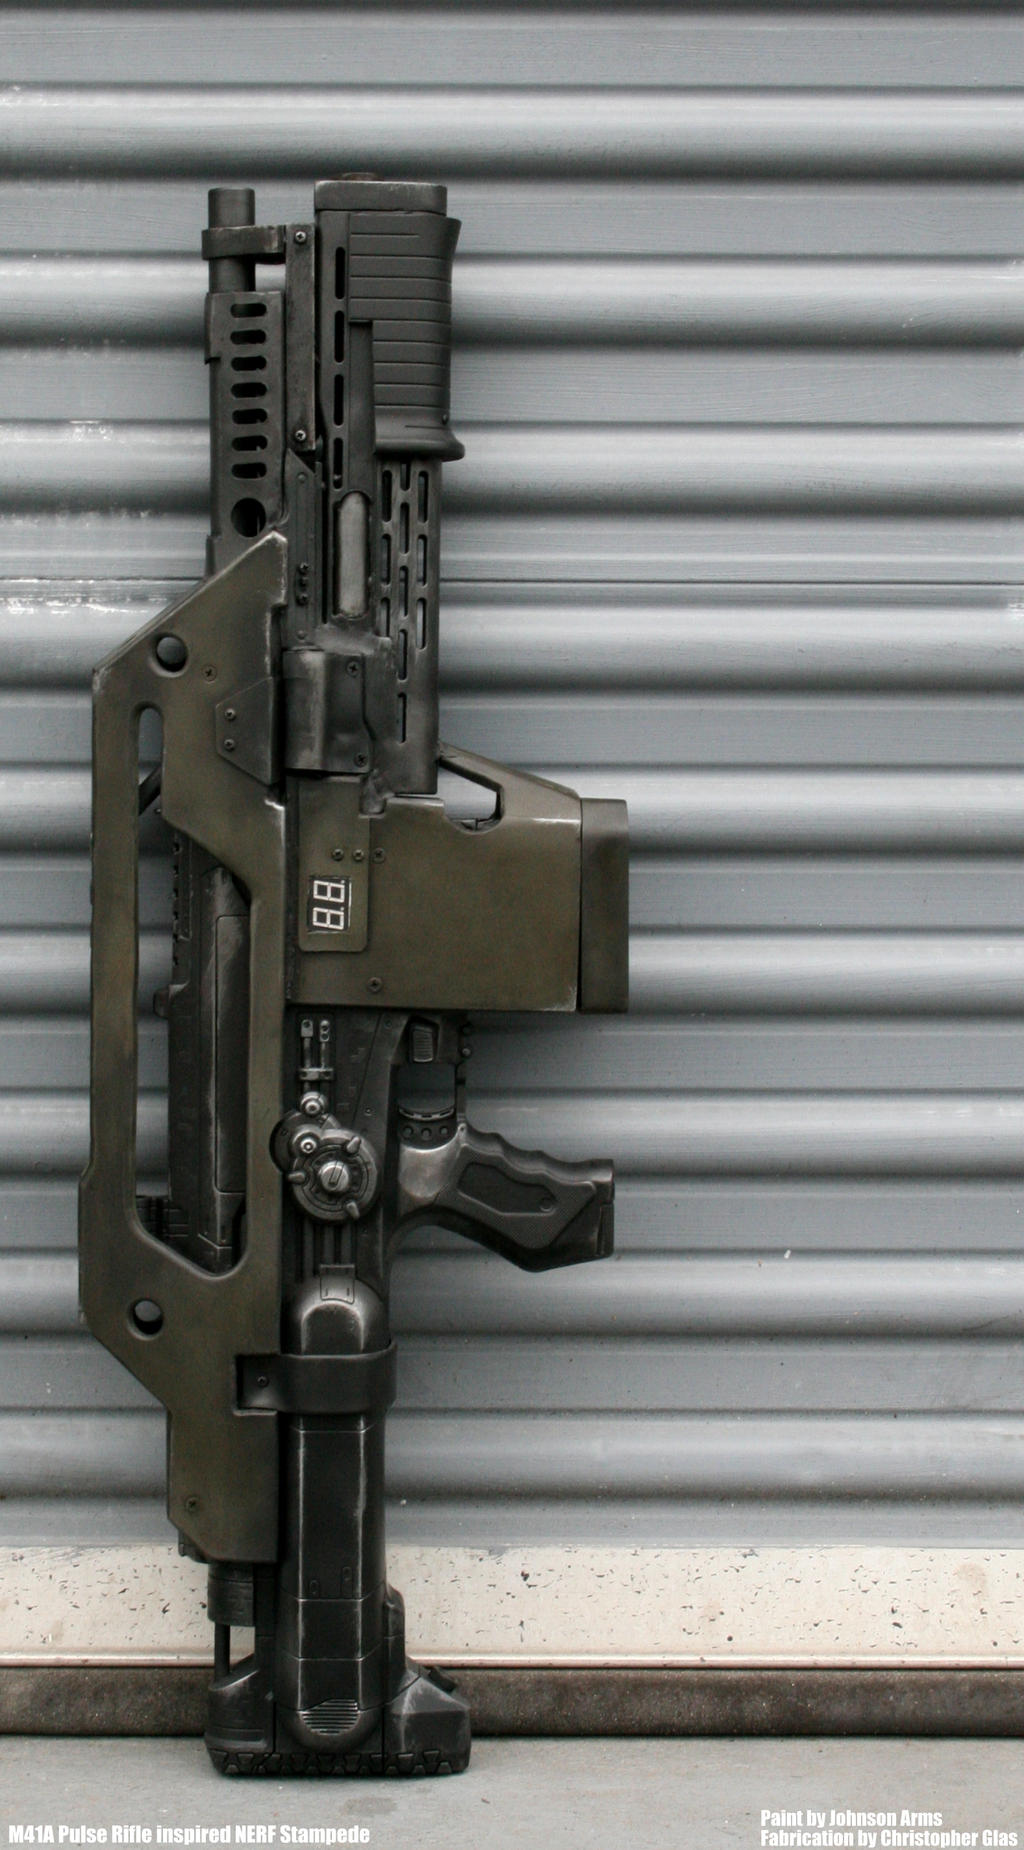 Tactical Tag Johnson Arms Pulse Rifle Inspired Stampede